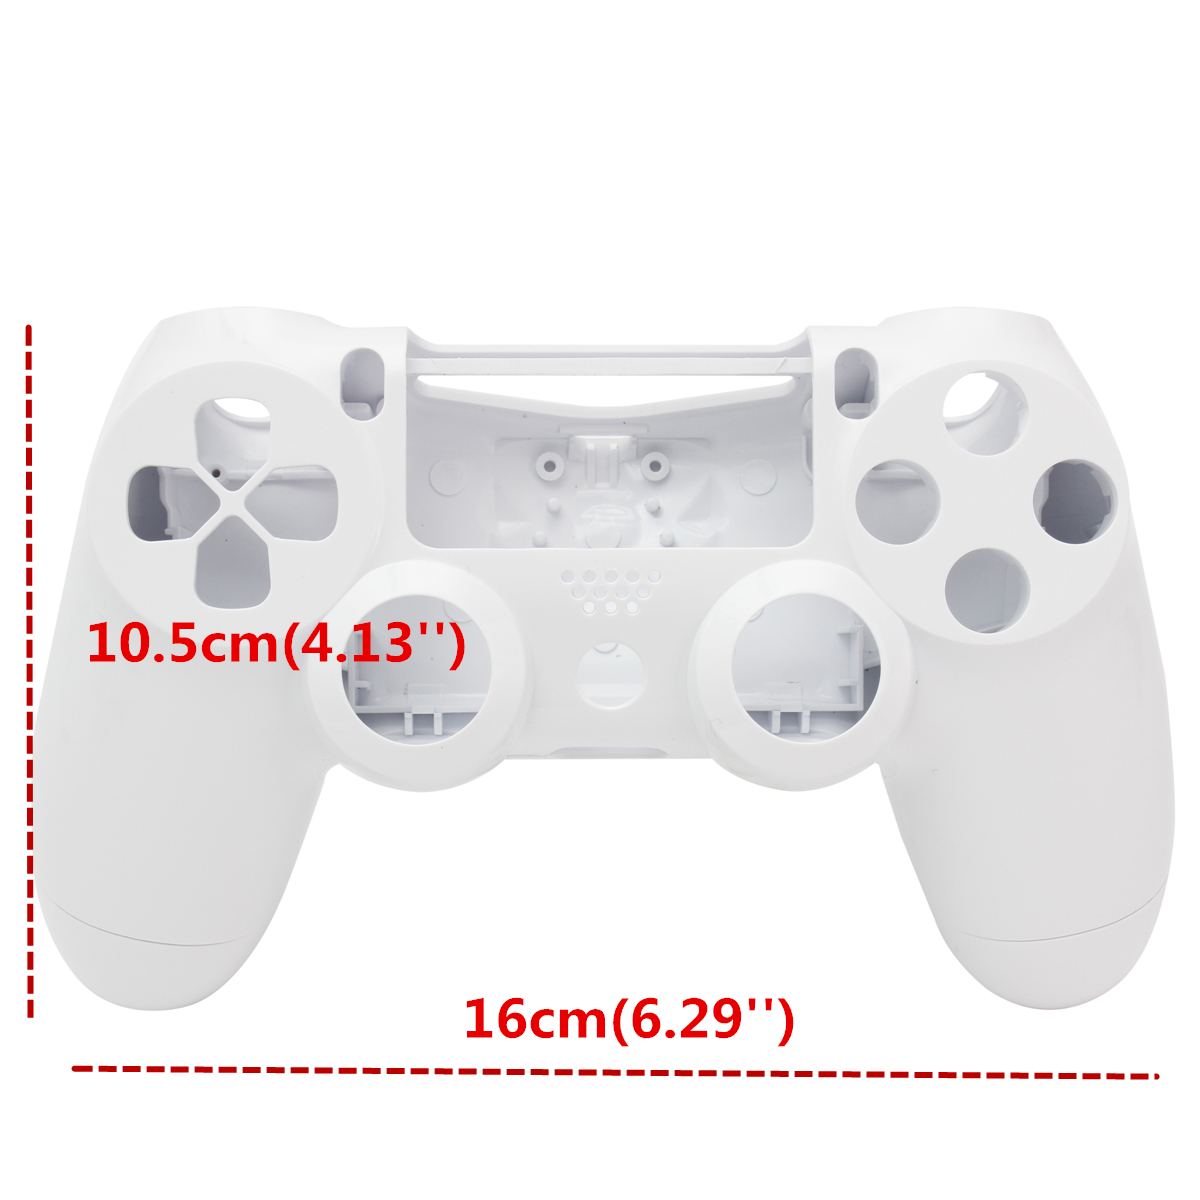 Customized Full Housing Shell Buttons Mod Cover Kits for PS4 Controller Solid White